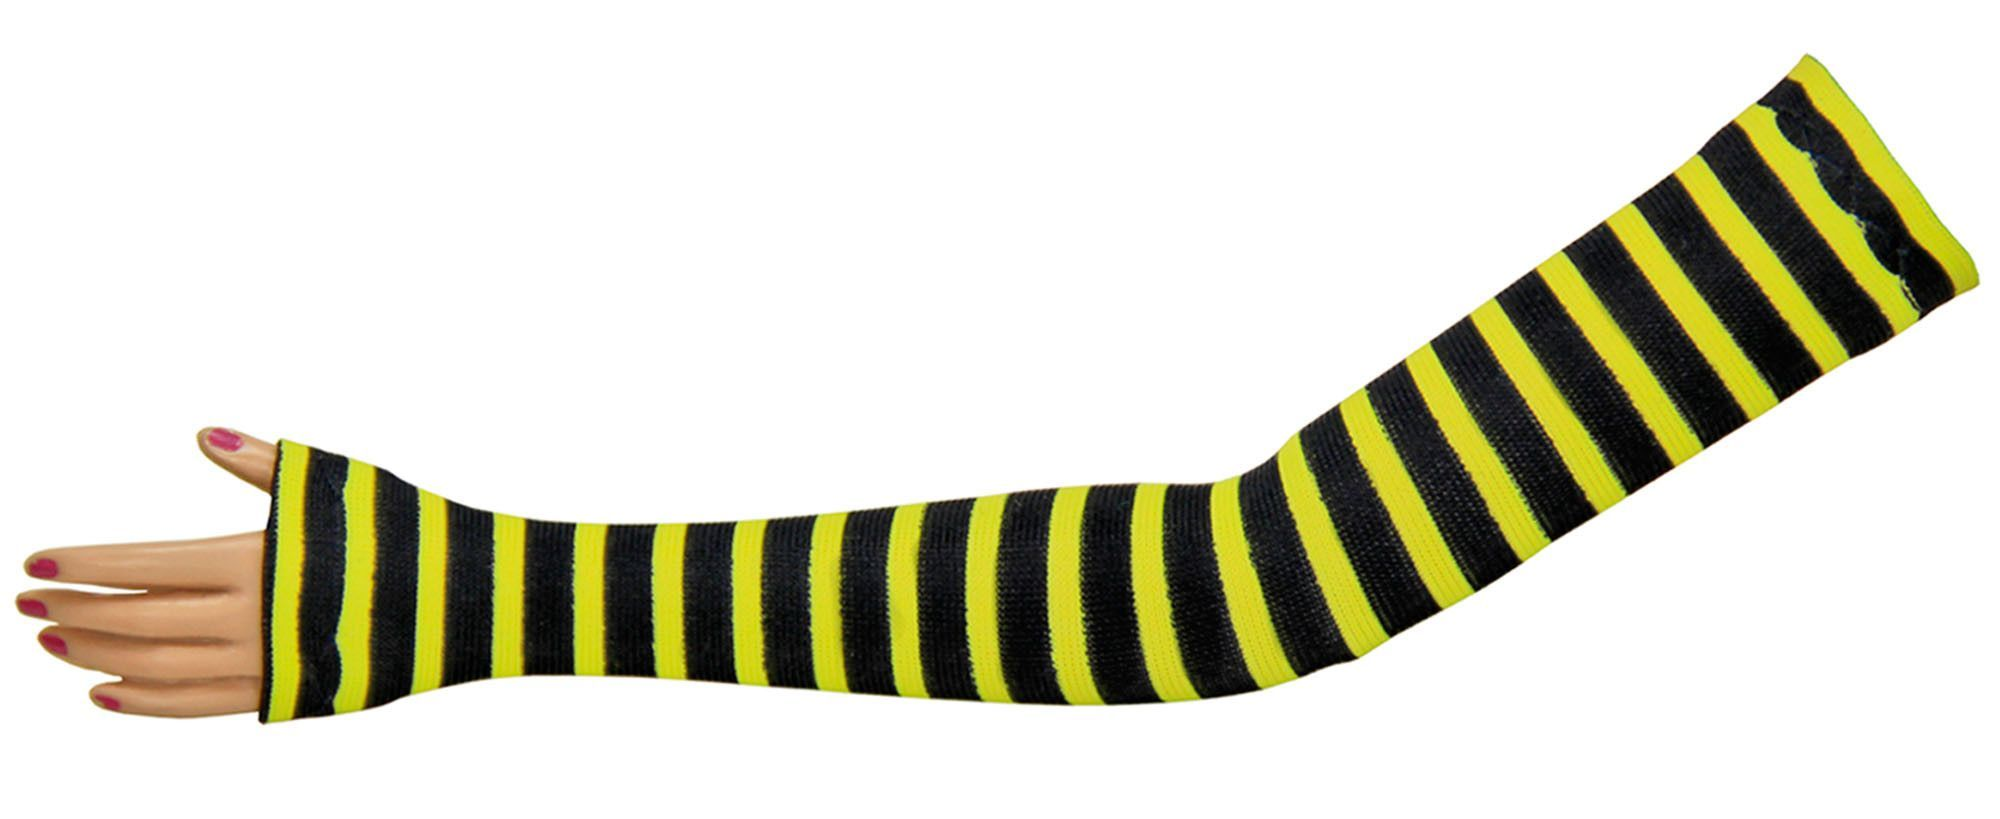 """Monster High 11"""" Tube Glove Pair - Yellow Jacket Stripe - Doll Clothes"""